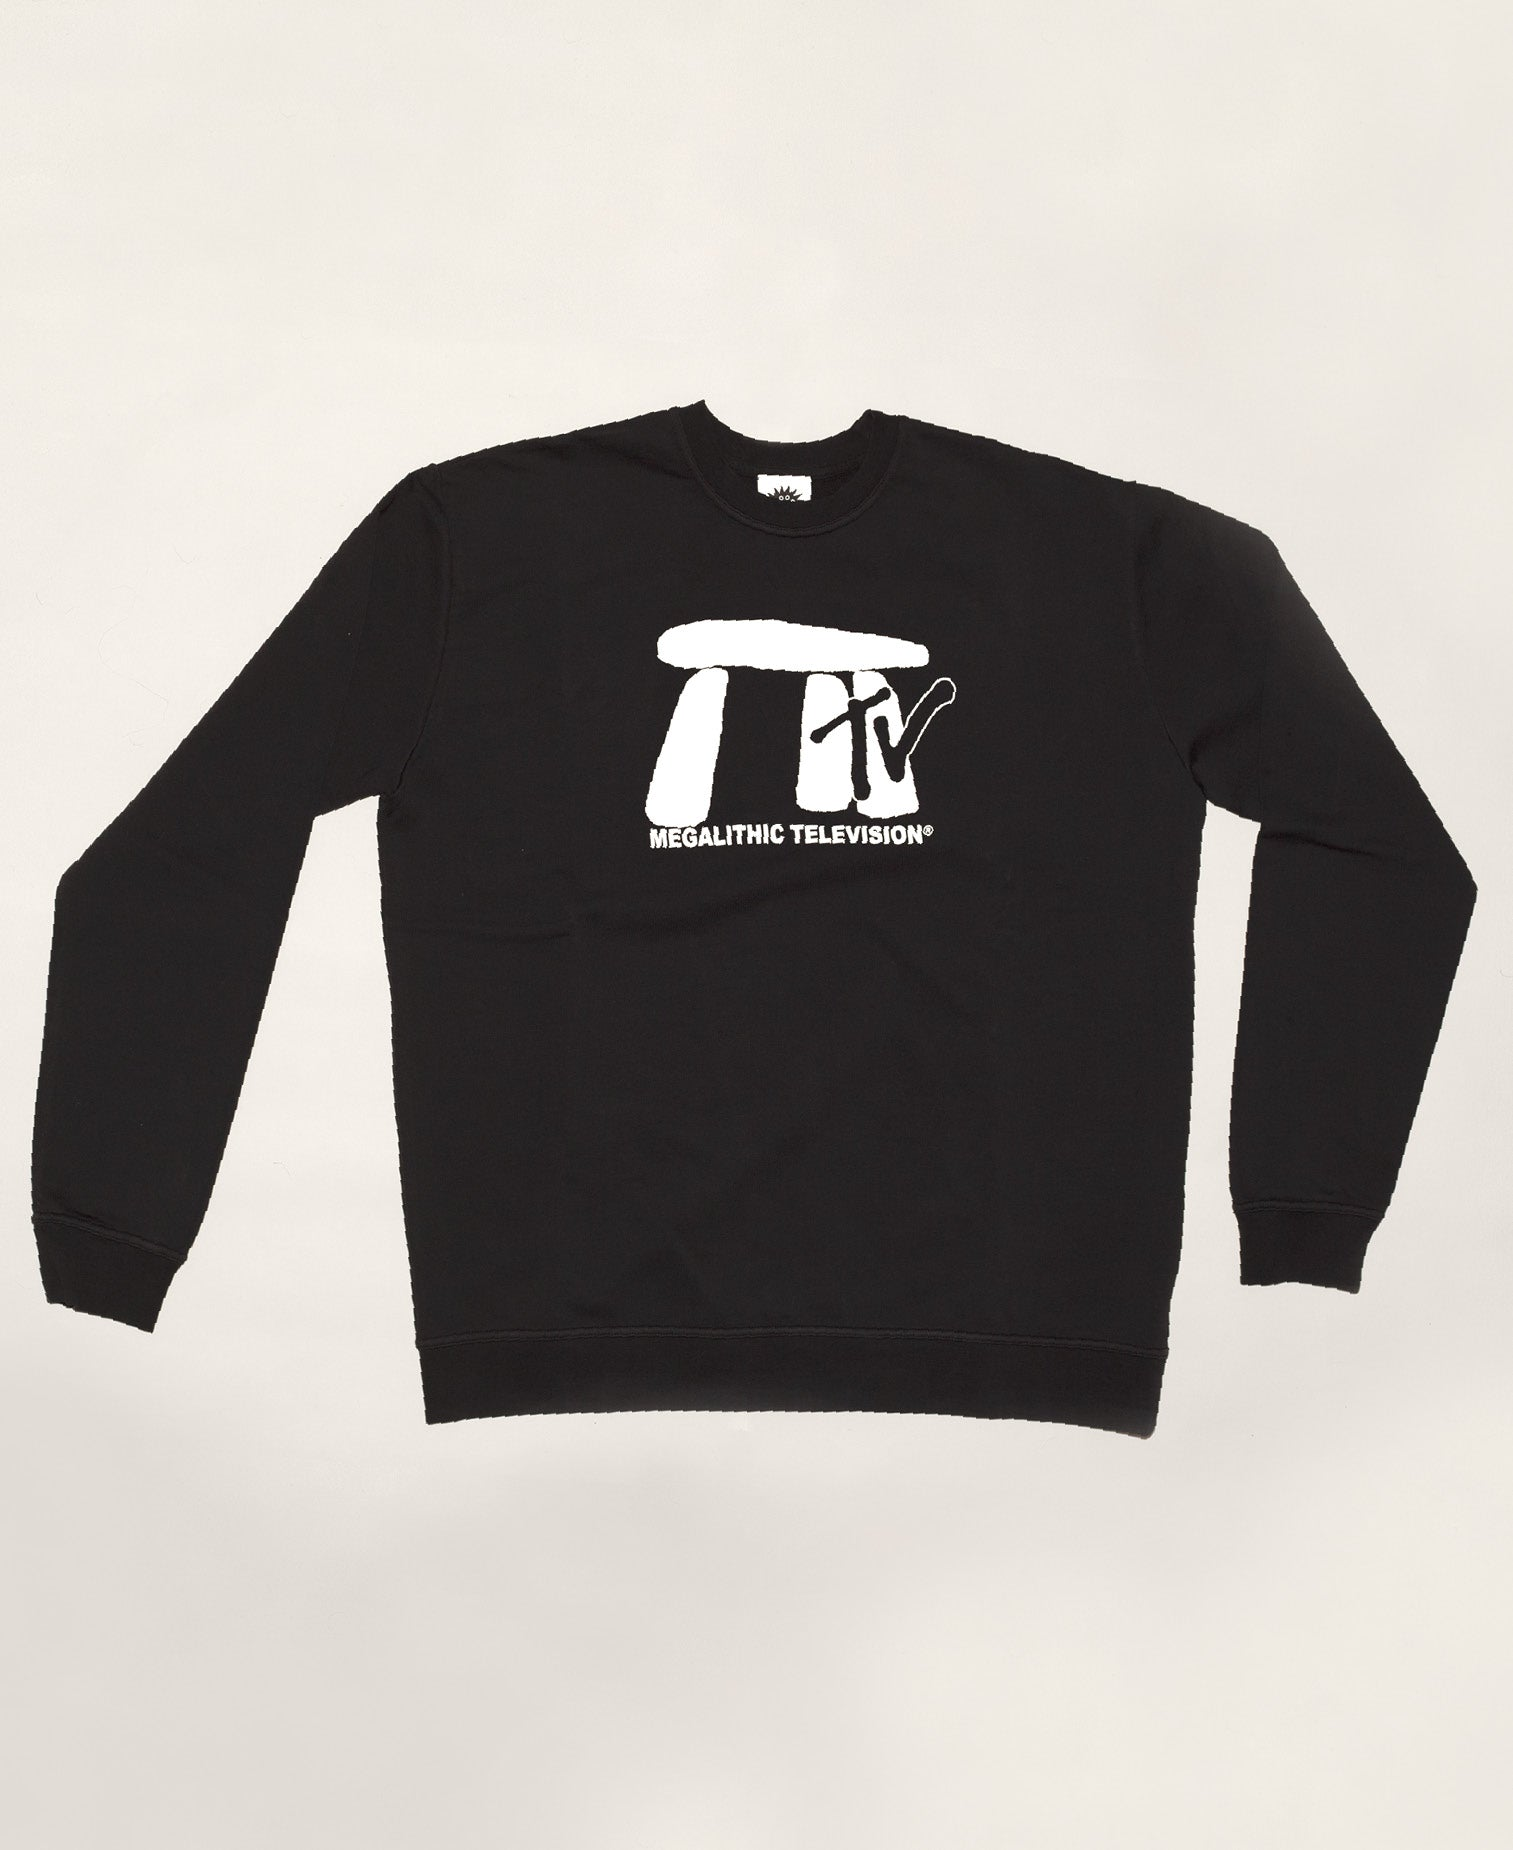 Megalithic TV Crewneck Sweater - Black